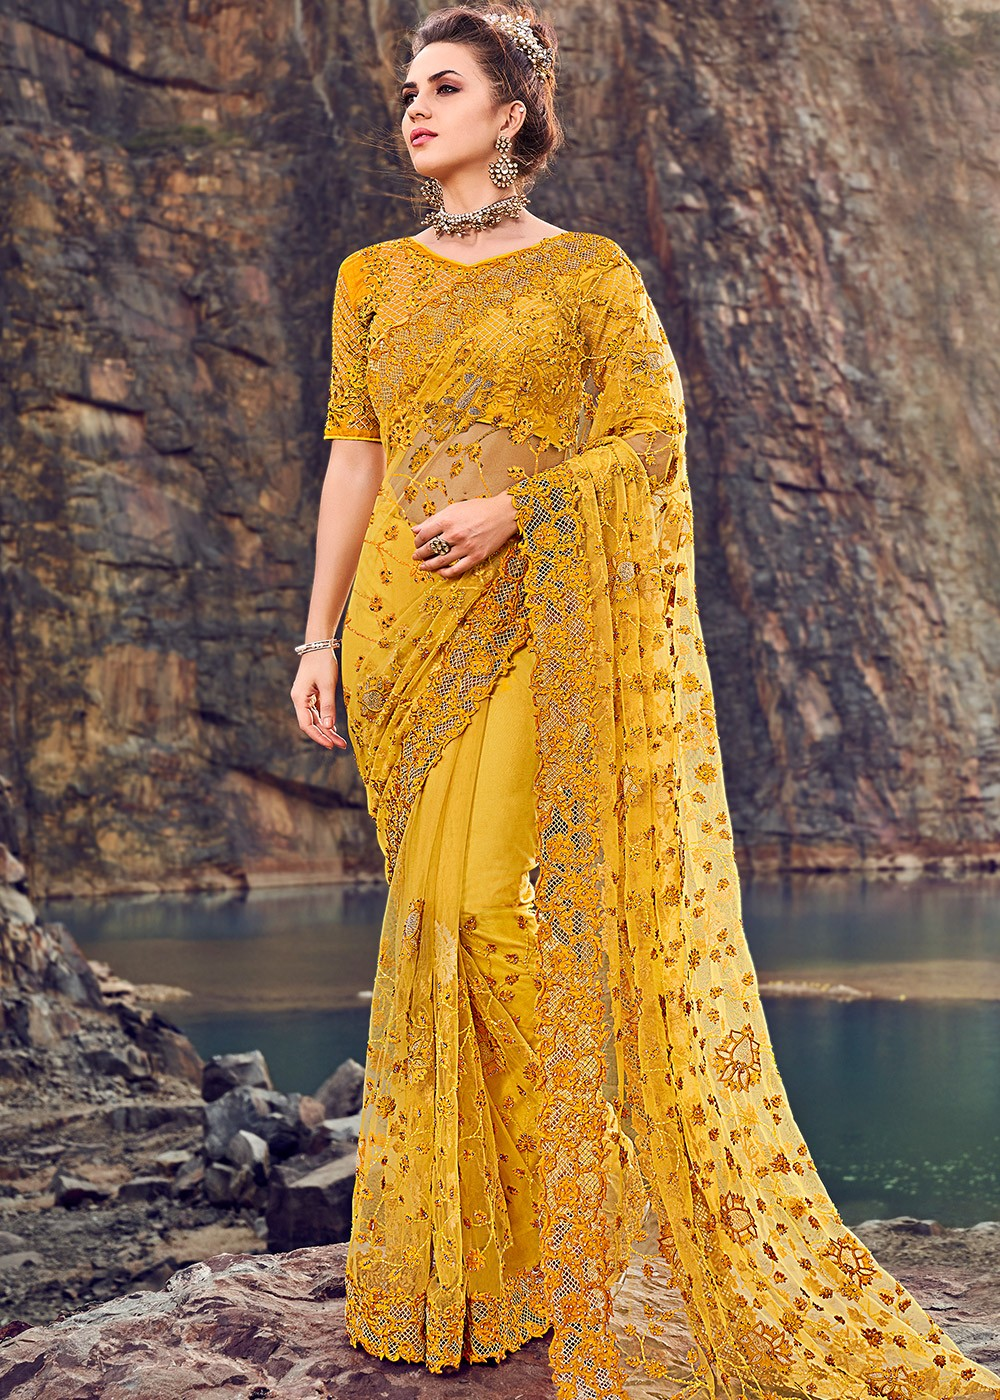 Details about  /Yellow Net Saree Sari Indian Bollywood Pakistani Wedding Embroidery Party Wear